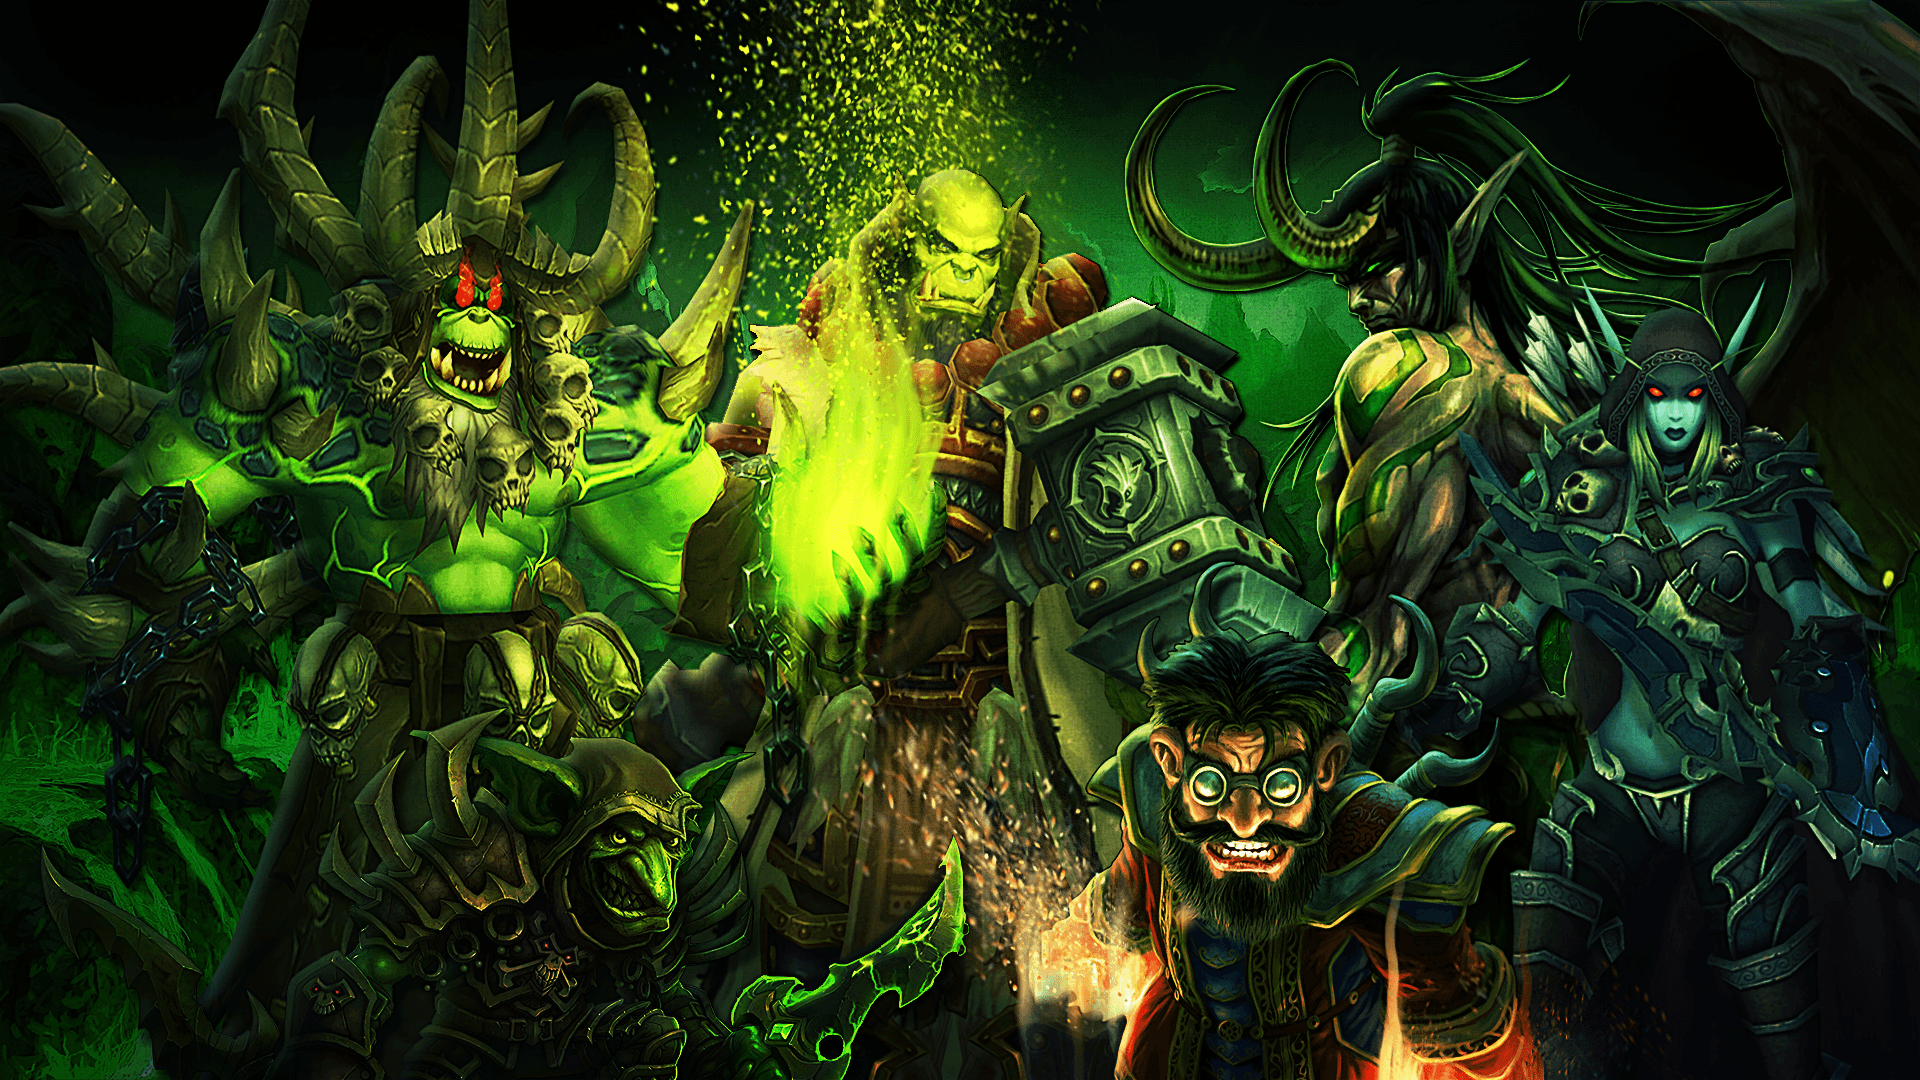 Warcraft 3 Wallpaper 1920x1080 Posted By Samantha Sellers